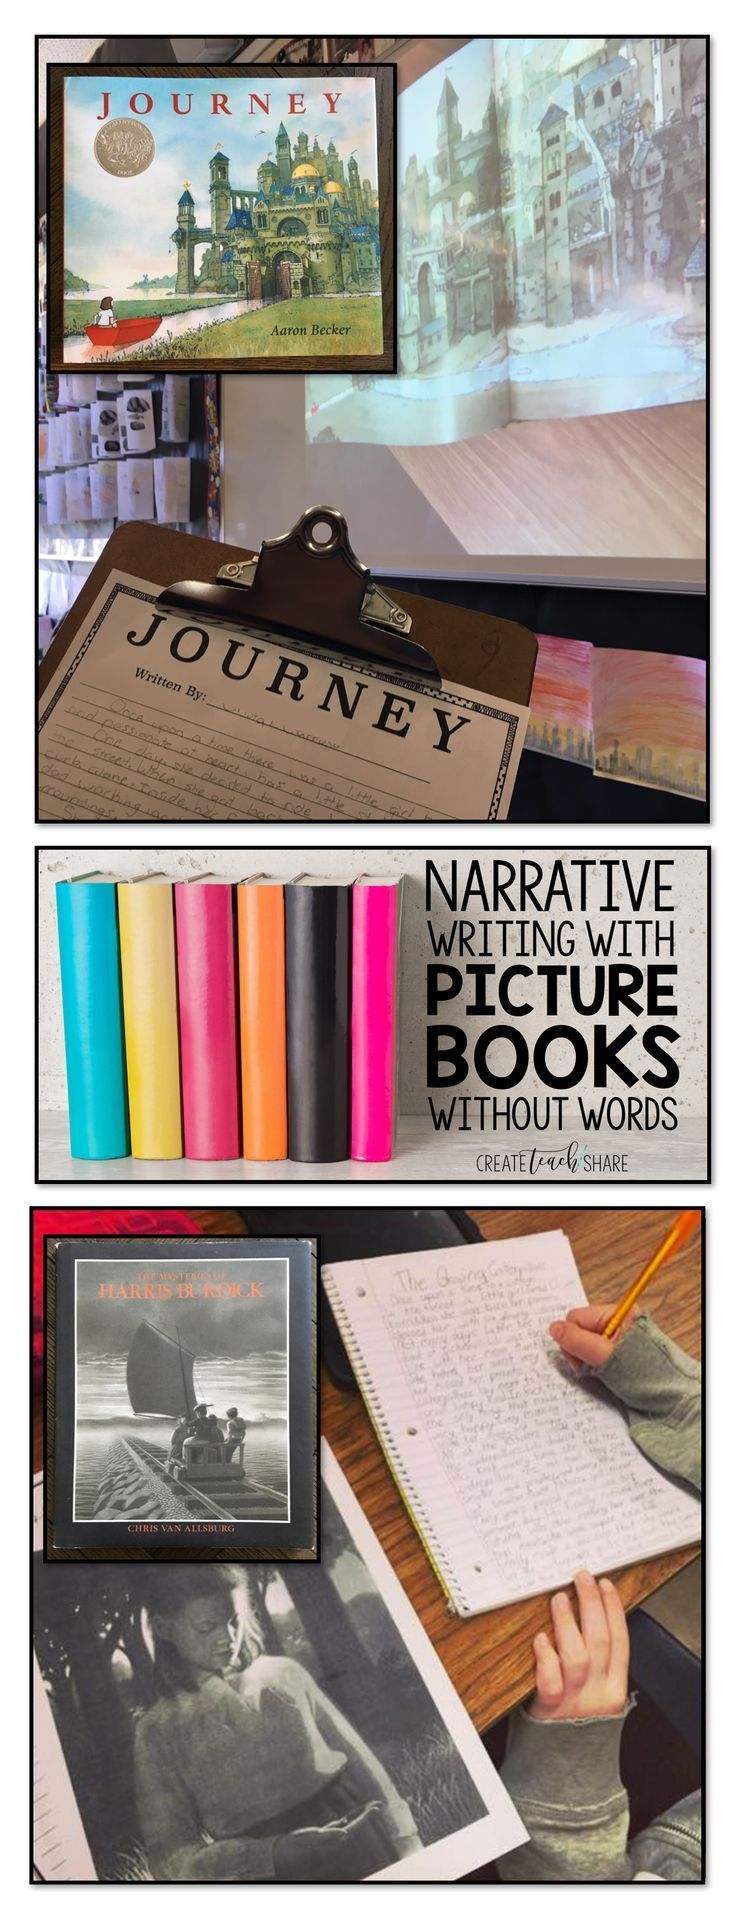 narrative essay using This is one of the only essays where you can get personal and tell a story see our narrative essay samples to learn how to express your own story in words.